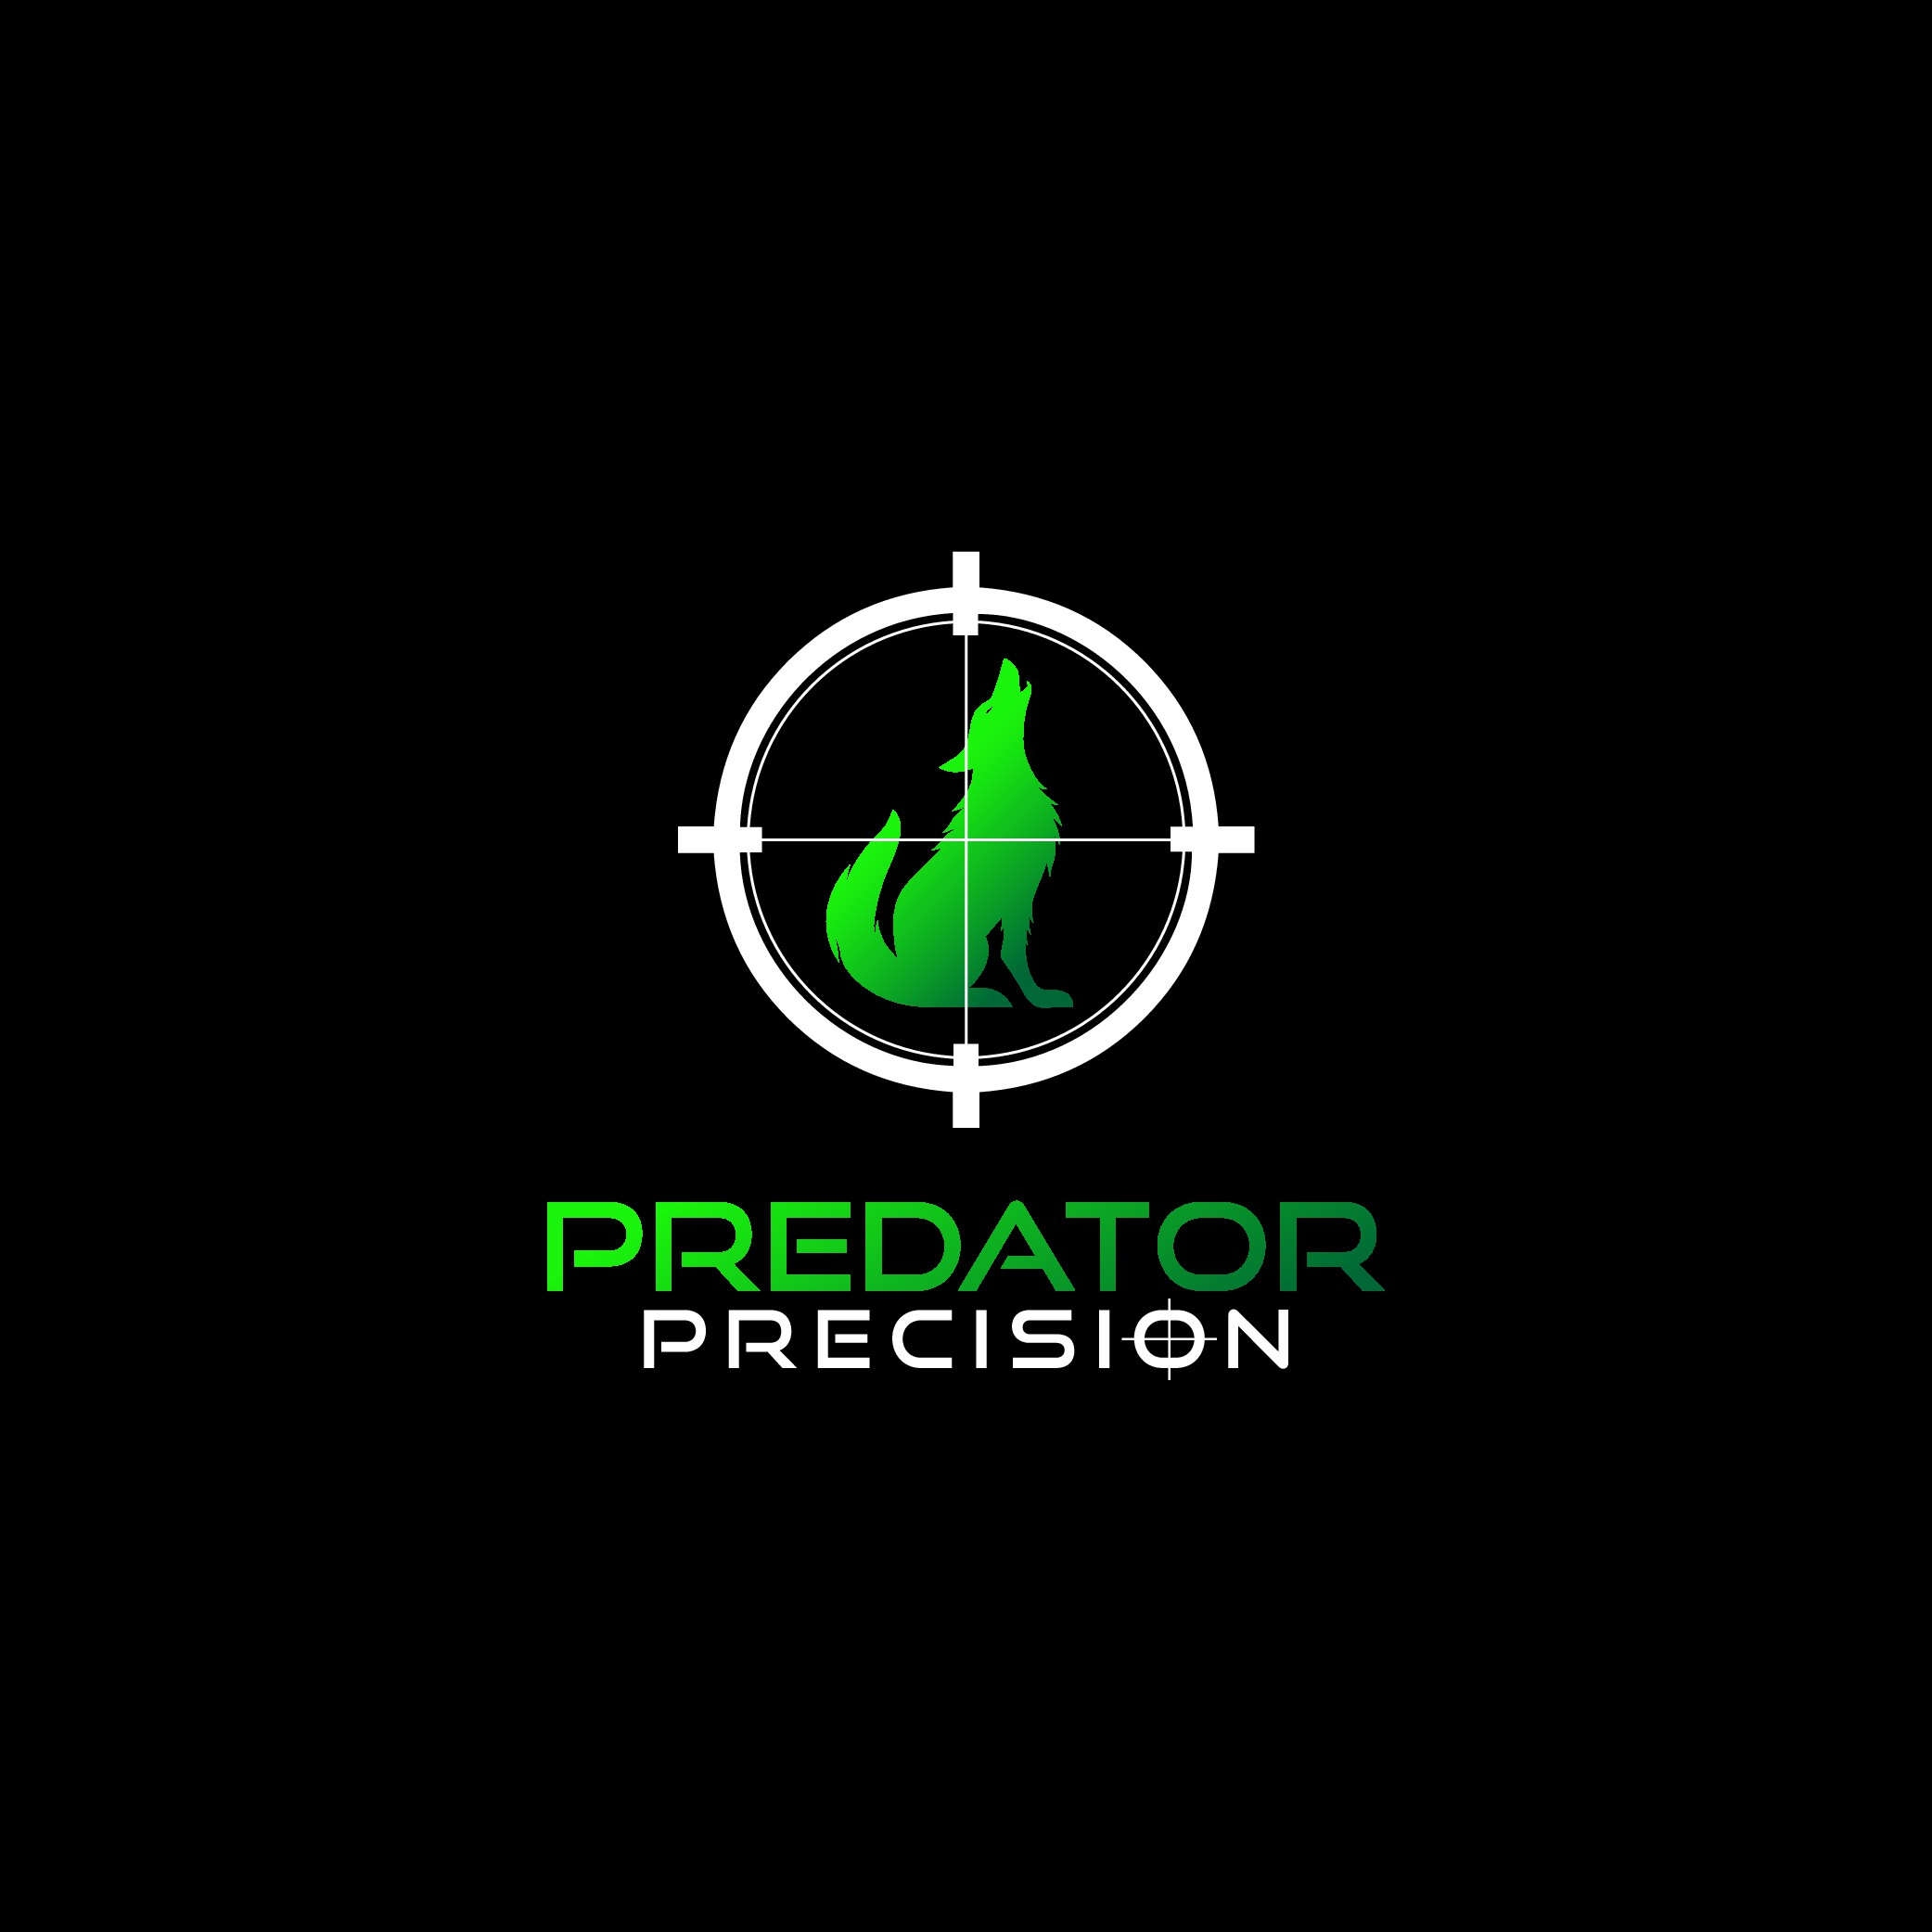 Design a logo for Predator Hunters that people want swag just for the logo!